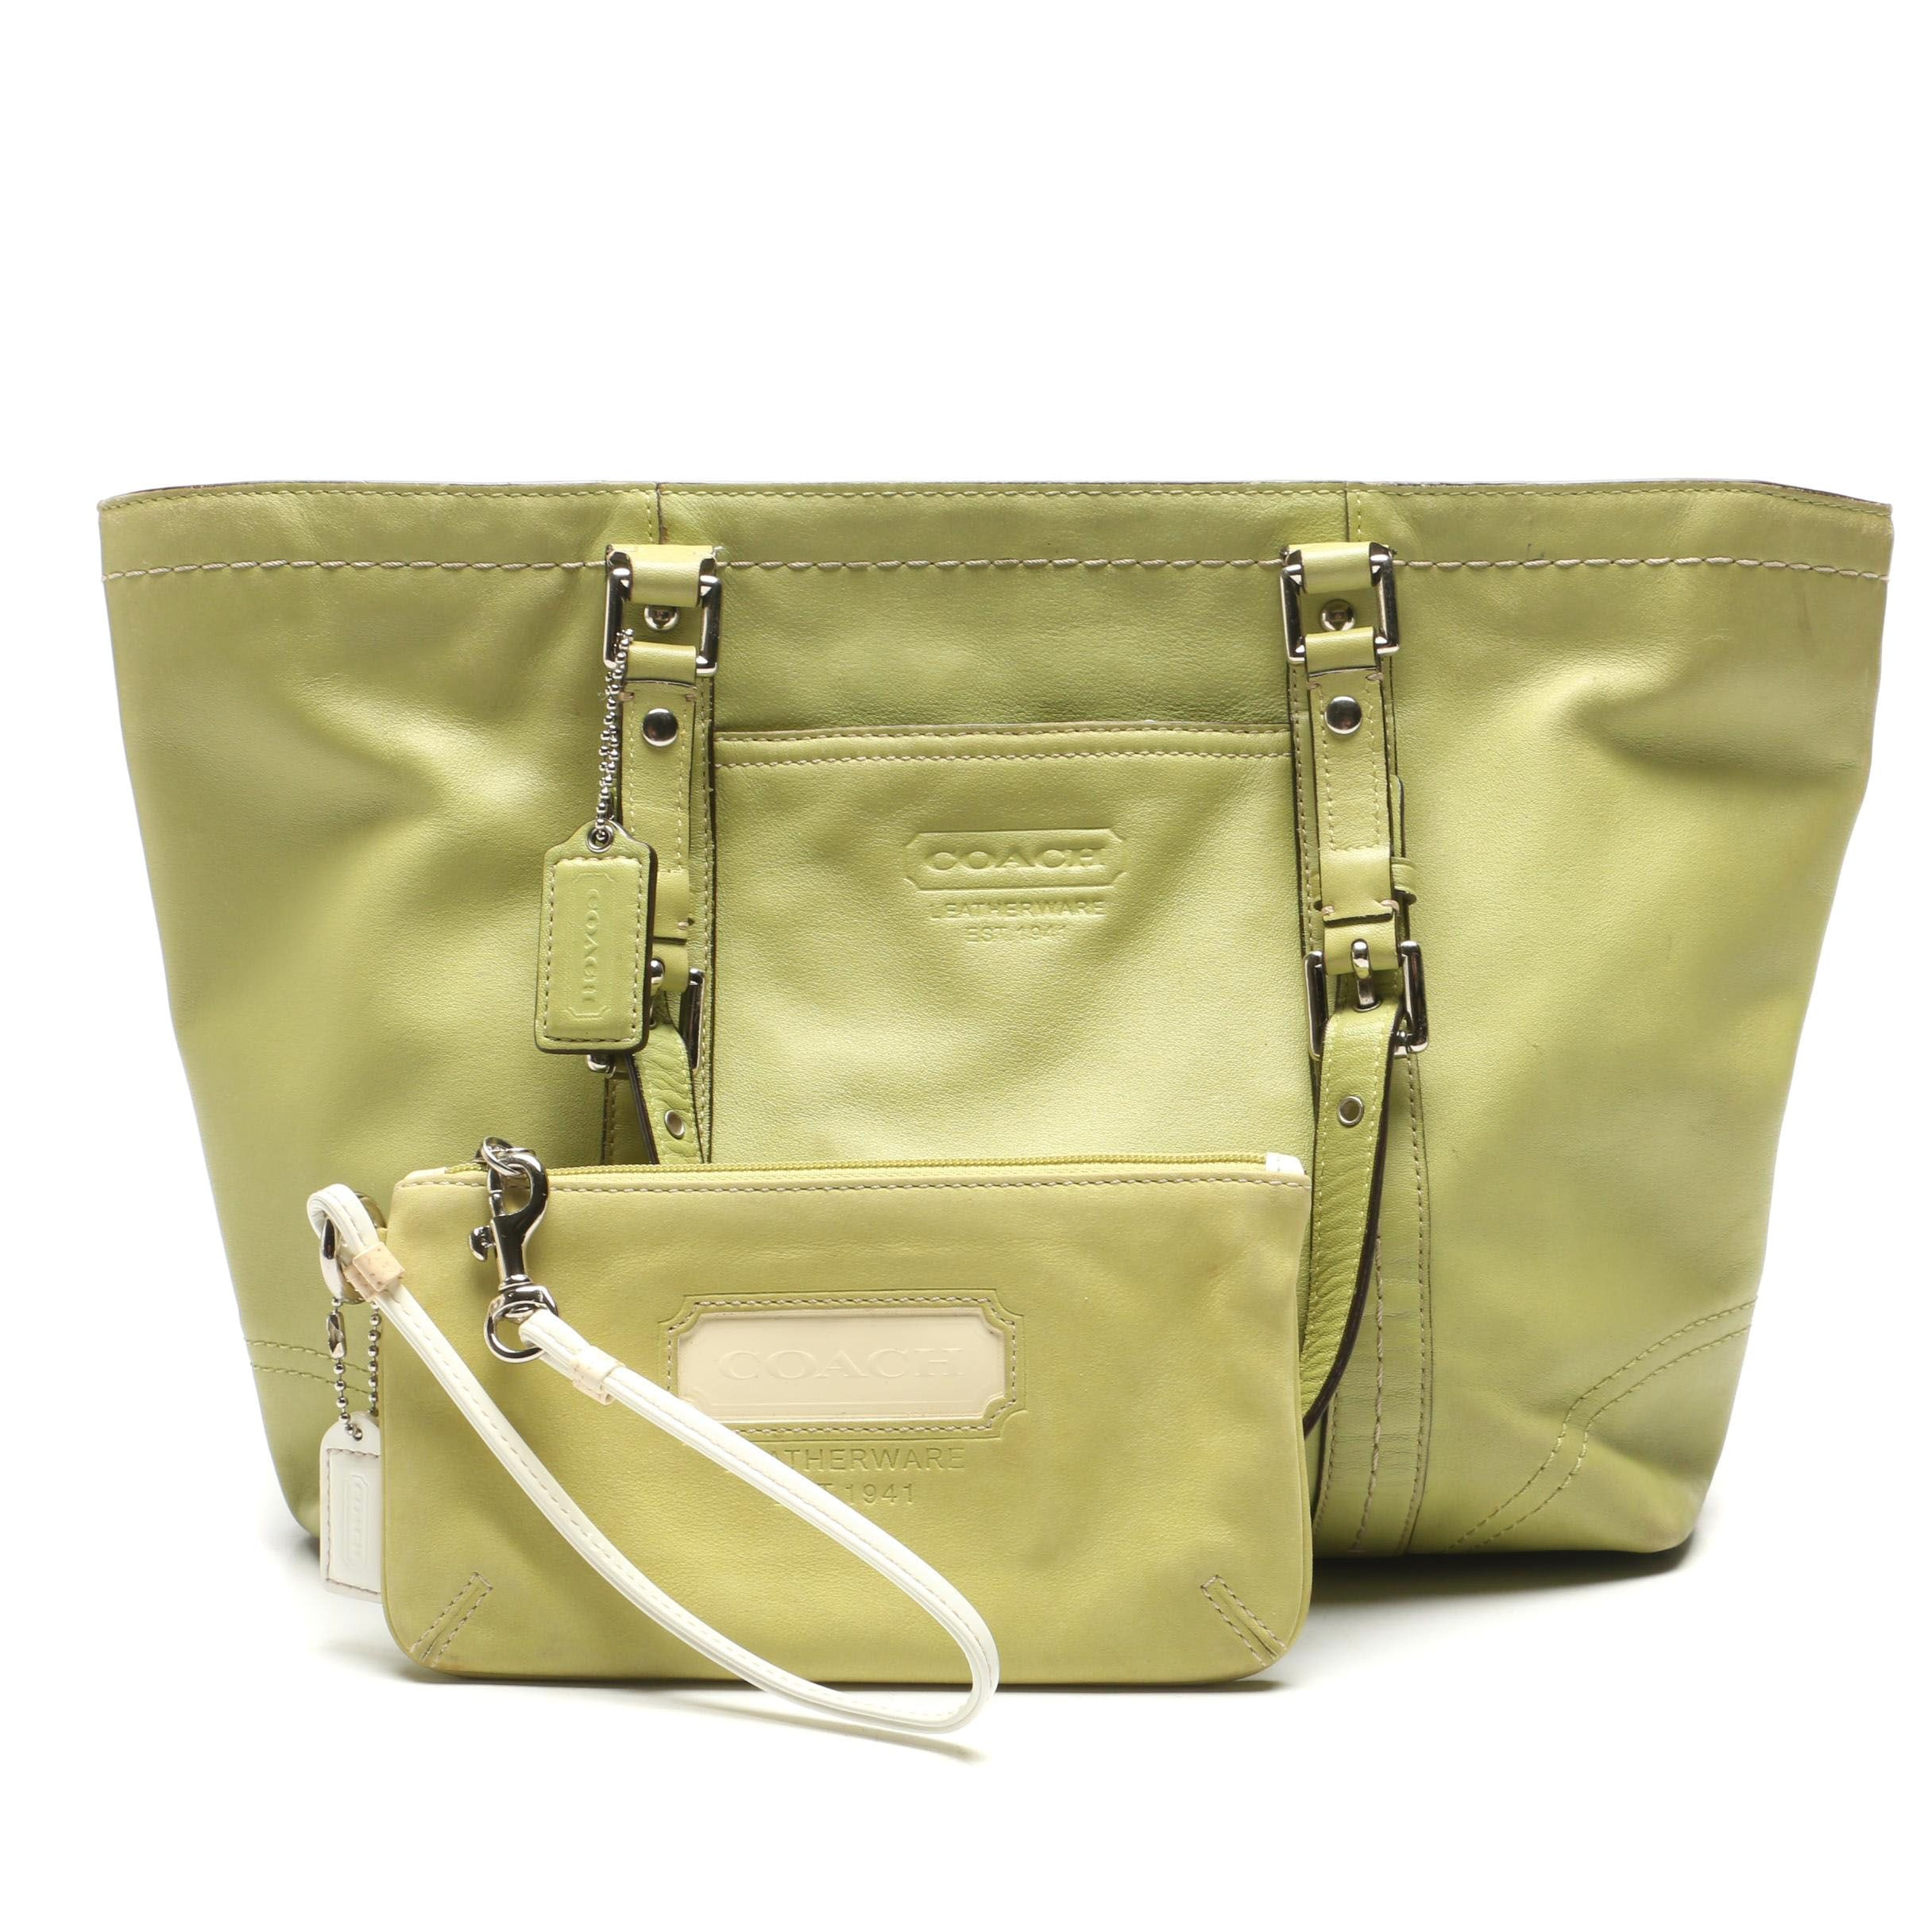 Coach Lime Green Leather Tote Bag and Wristlet